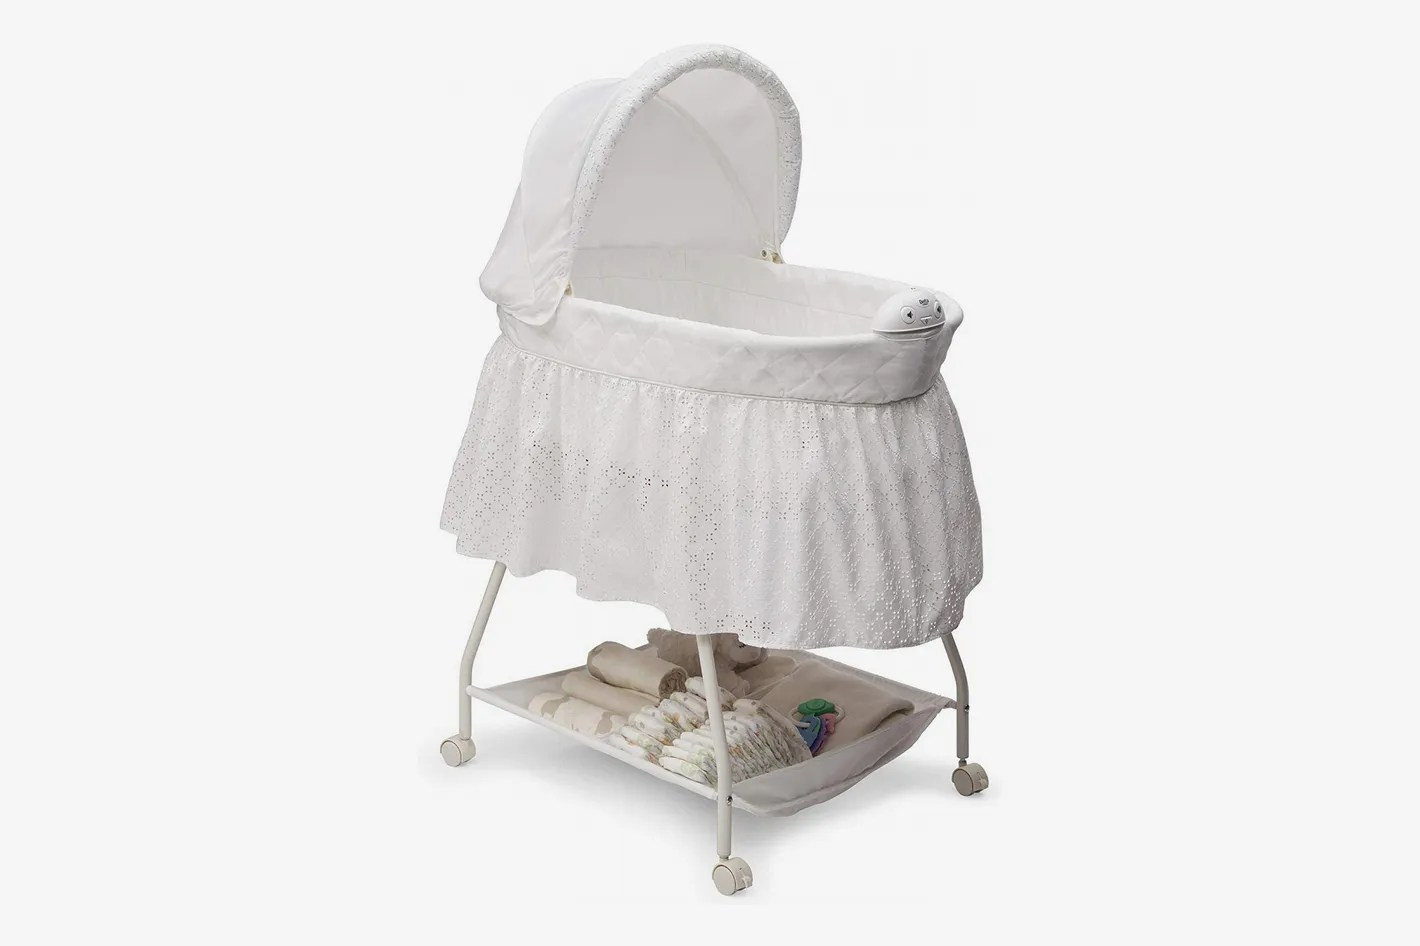 Newborn Bassinet Reflux 9 Best Baby Bassinets 2019 The Strategist New York